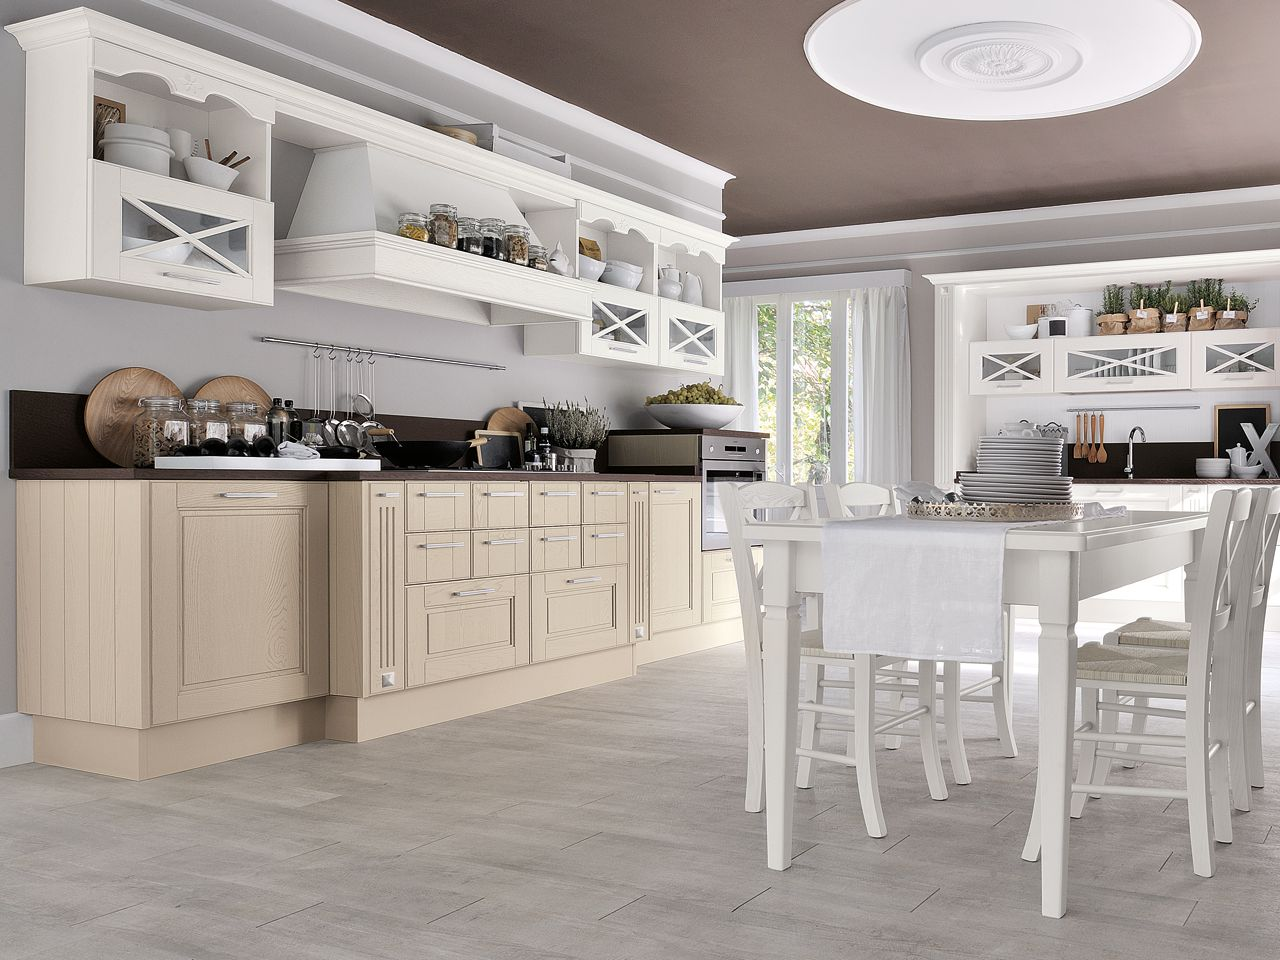 The Beauty And Strength Of Solid Wood For A Kitchen With A Classical Feel That Can Also Be Used In A Progetti Di Cucine Mobili Cucina Legno Cucina Shabby Chic